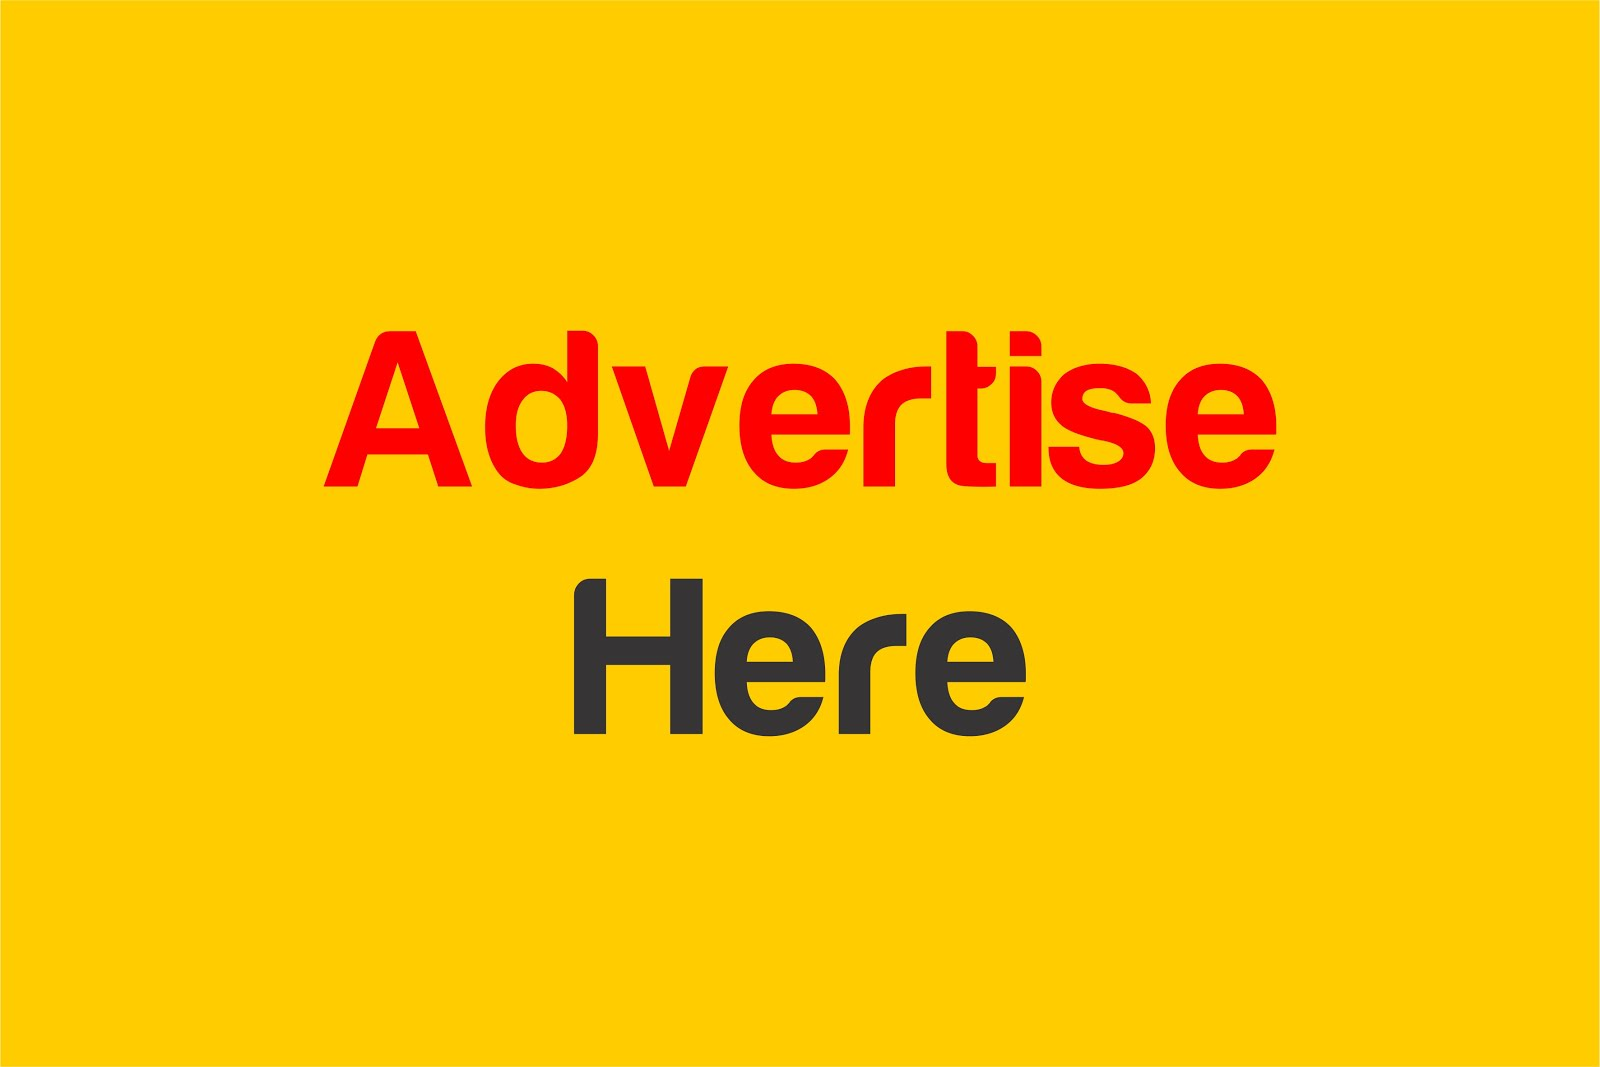 FOR YOUR ADVERTS CONTACT: +2348099958811